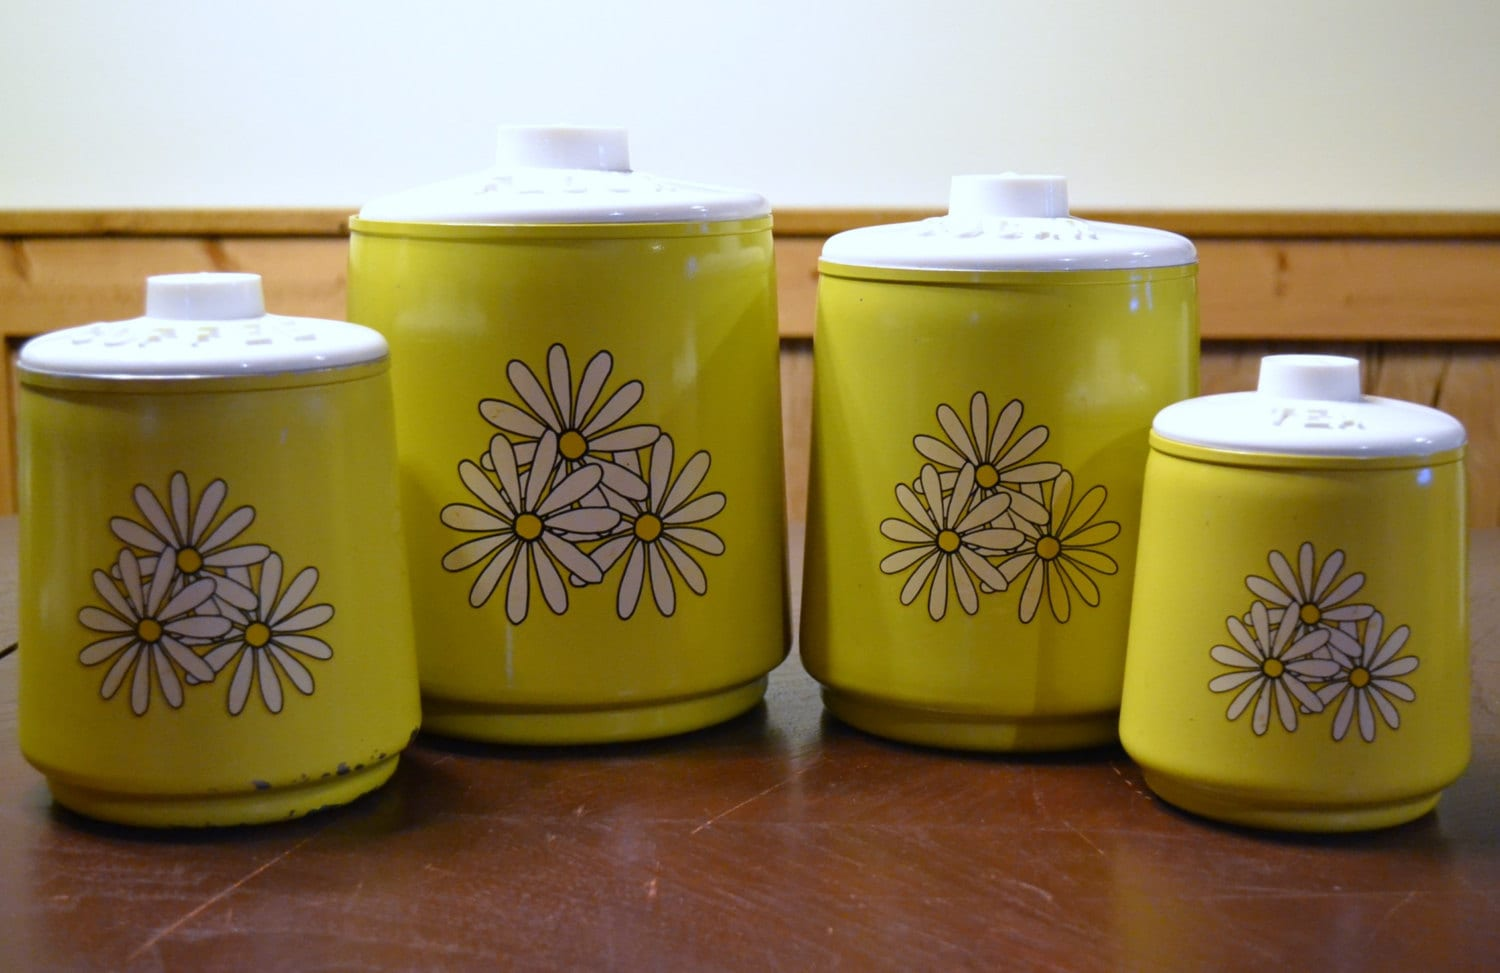 Retro Metal Kitchen Canisters Yellow with White Daisies Kromex